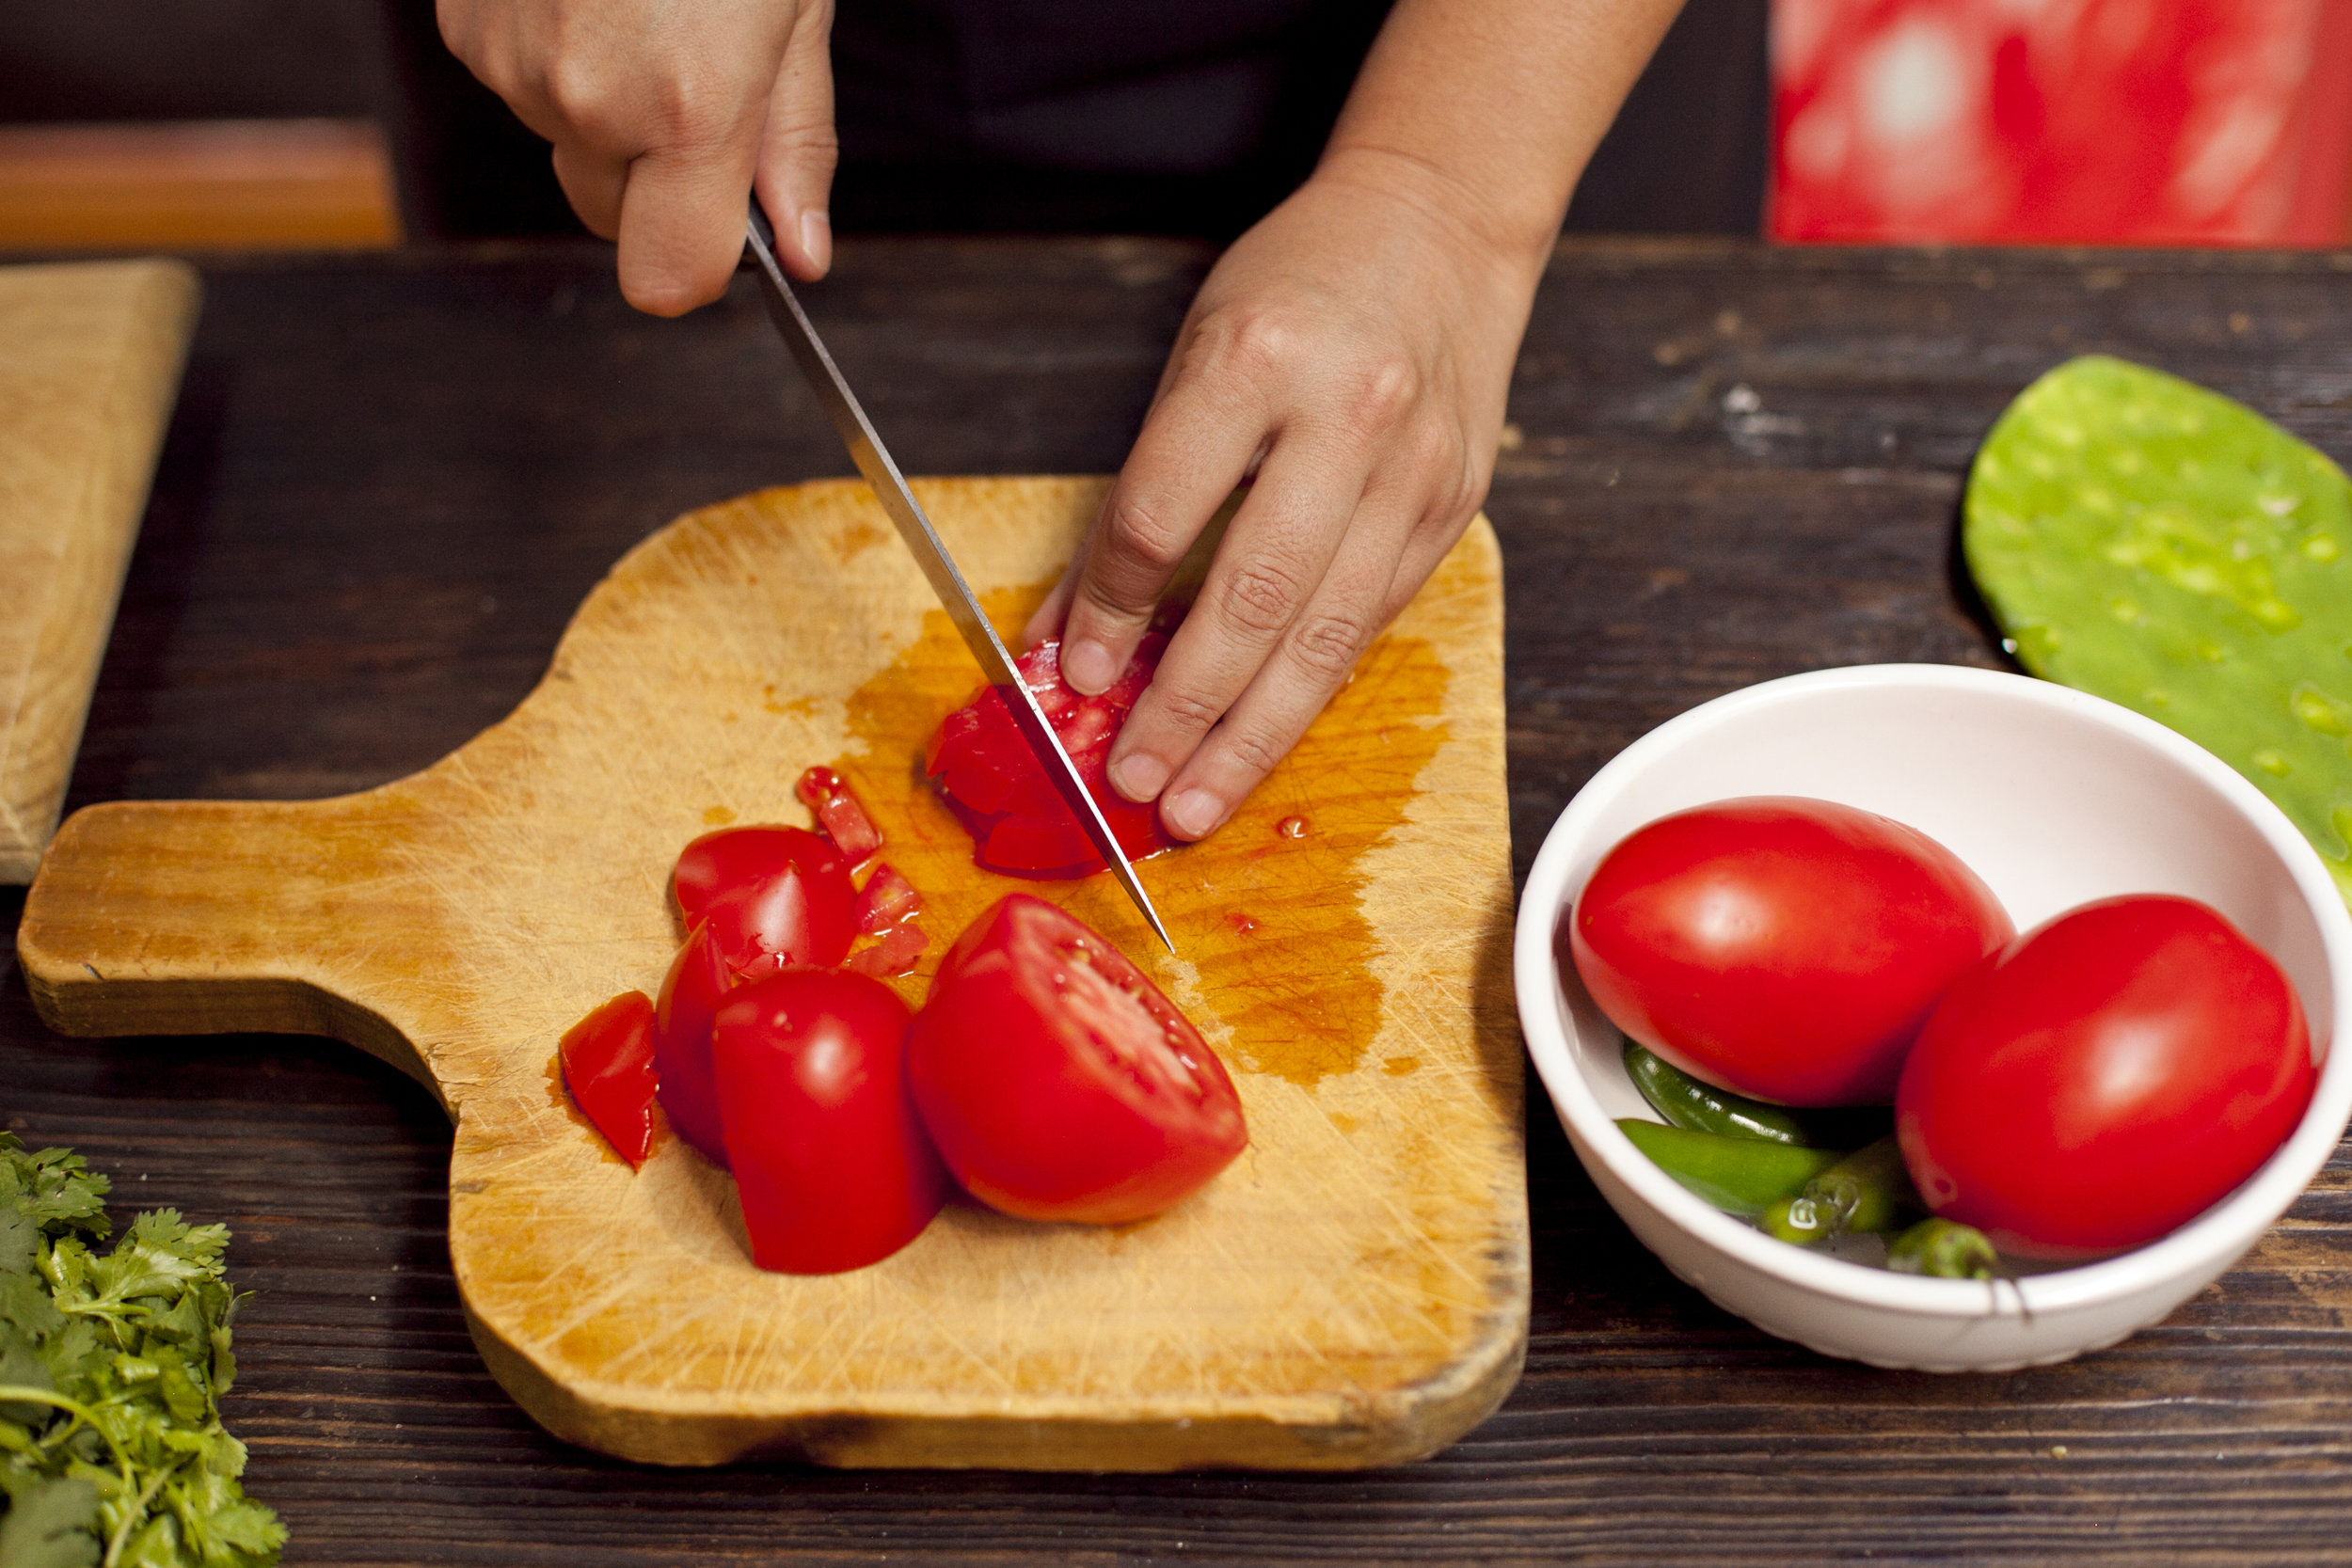 Copy of chopping tomatoes